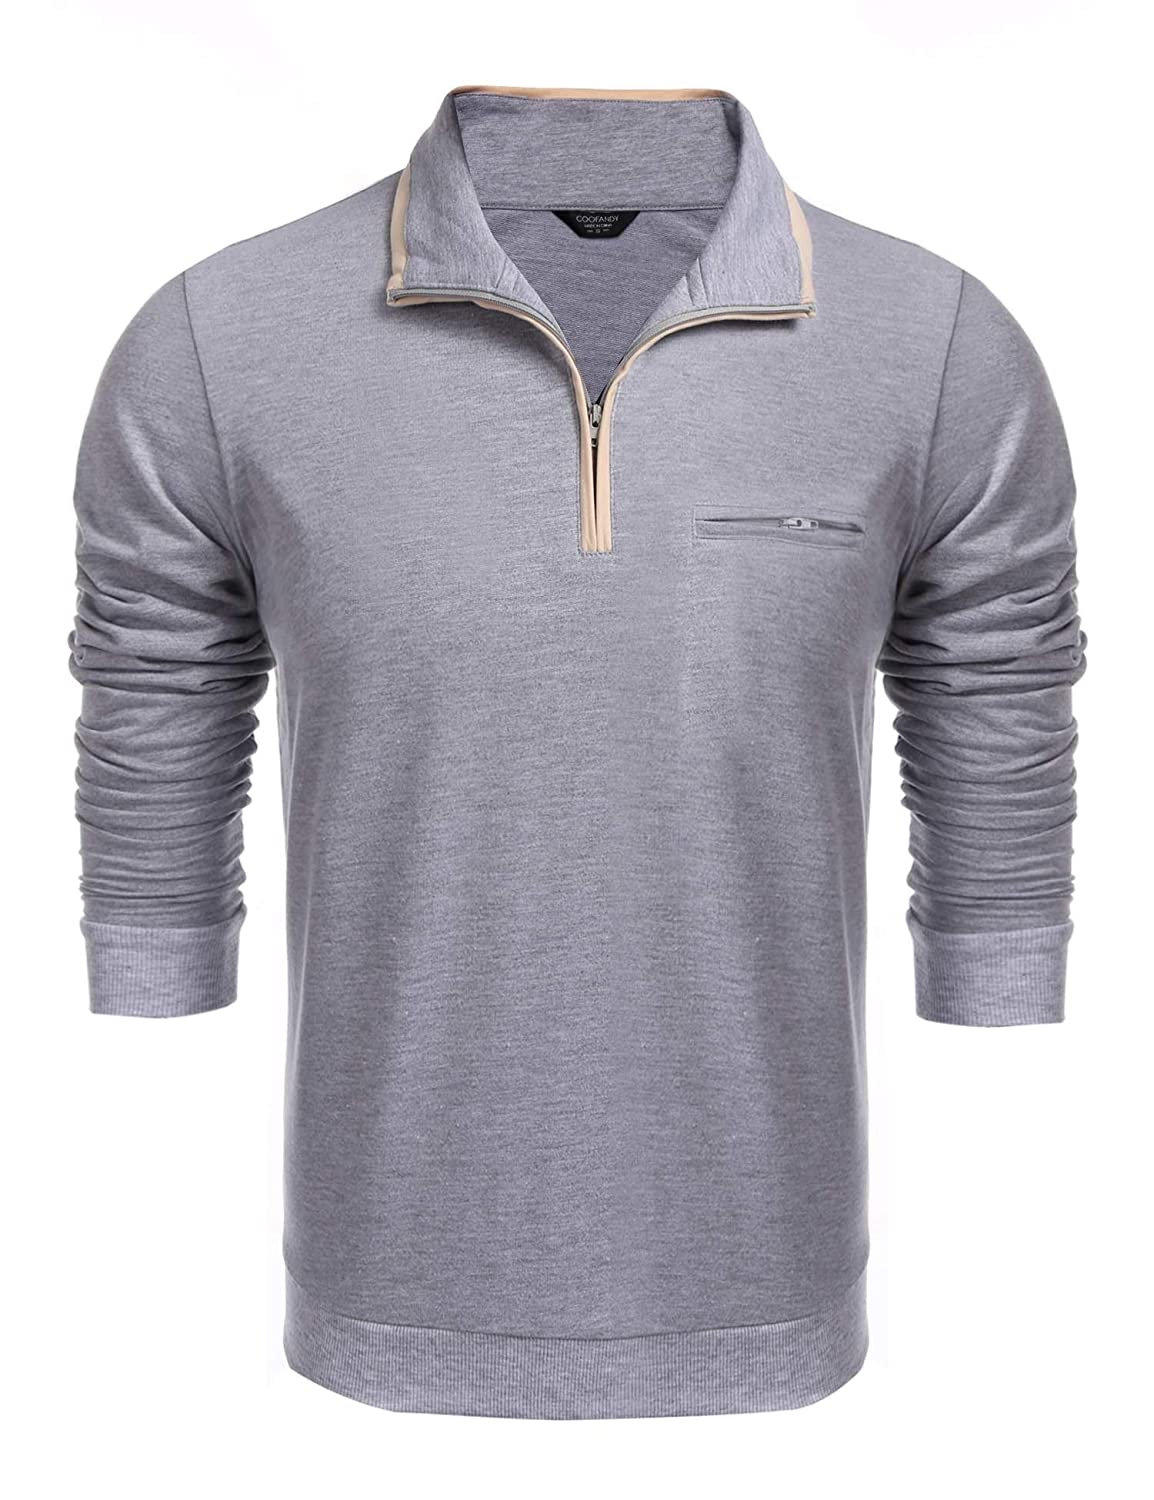 COOFANDY Men's Relaxed Fit Quarter Zip Mock-Neck Polo Collar Pullover Sweatshirt